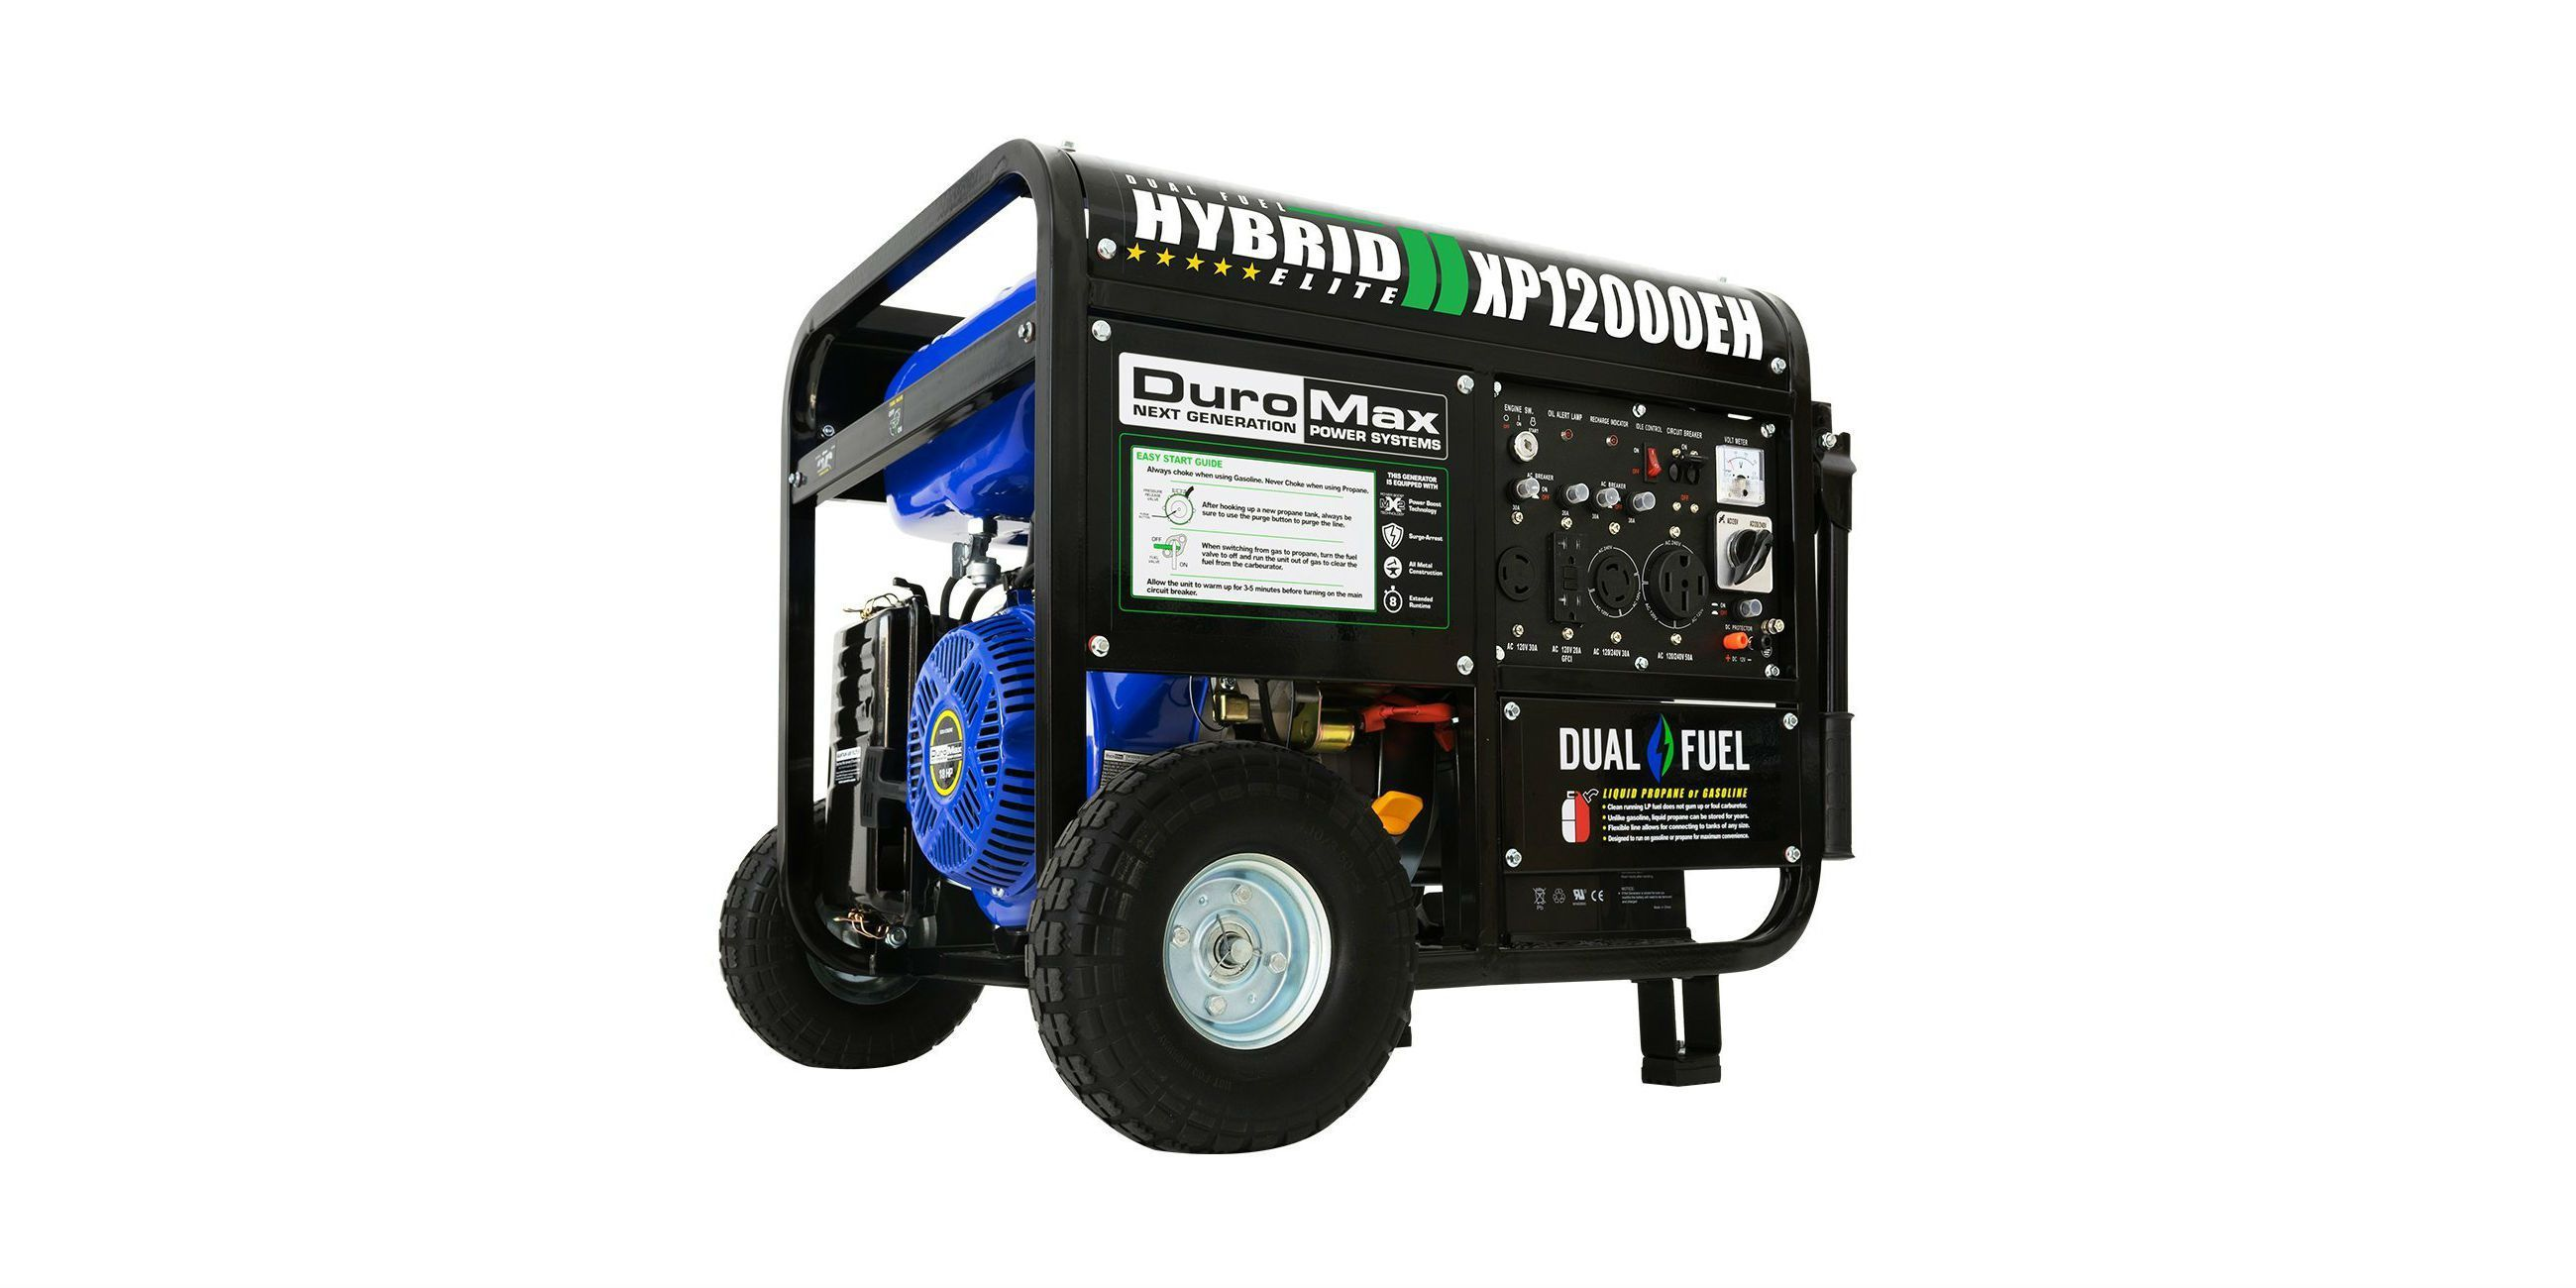 Generator Reviews 2018 Generators For Home Use Electric